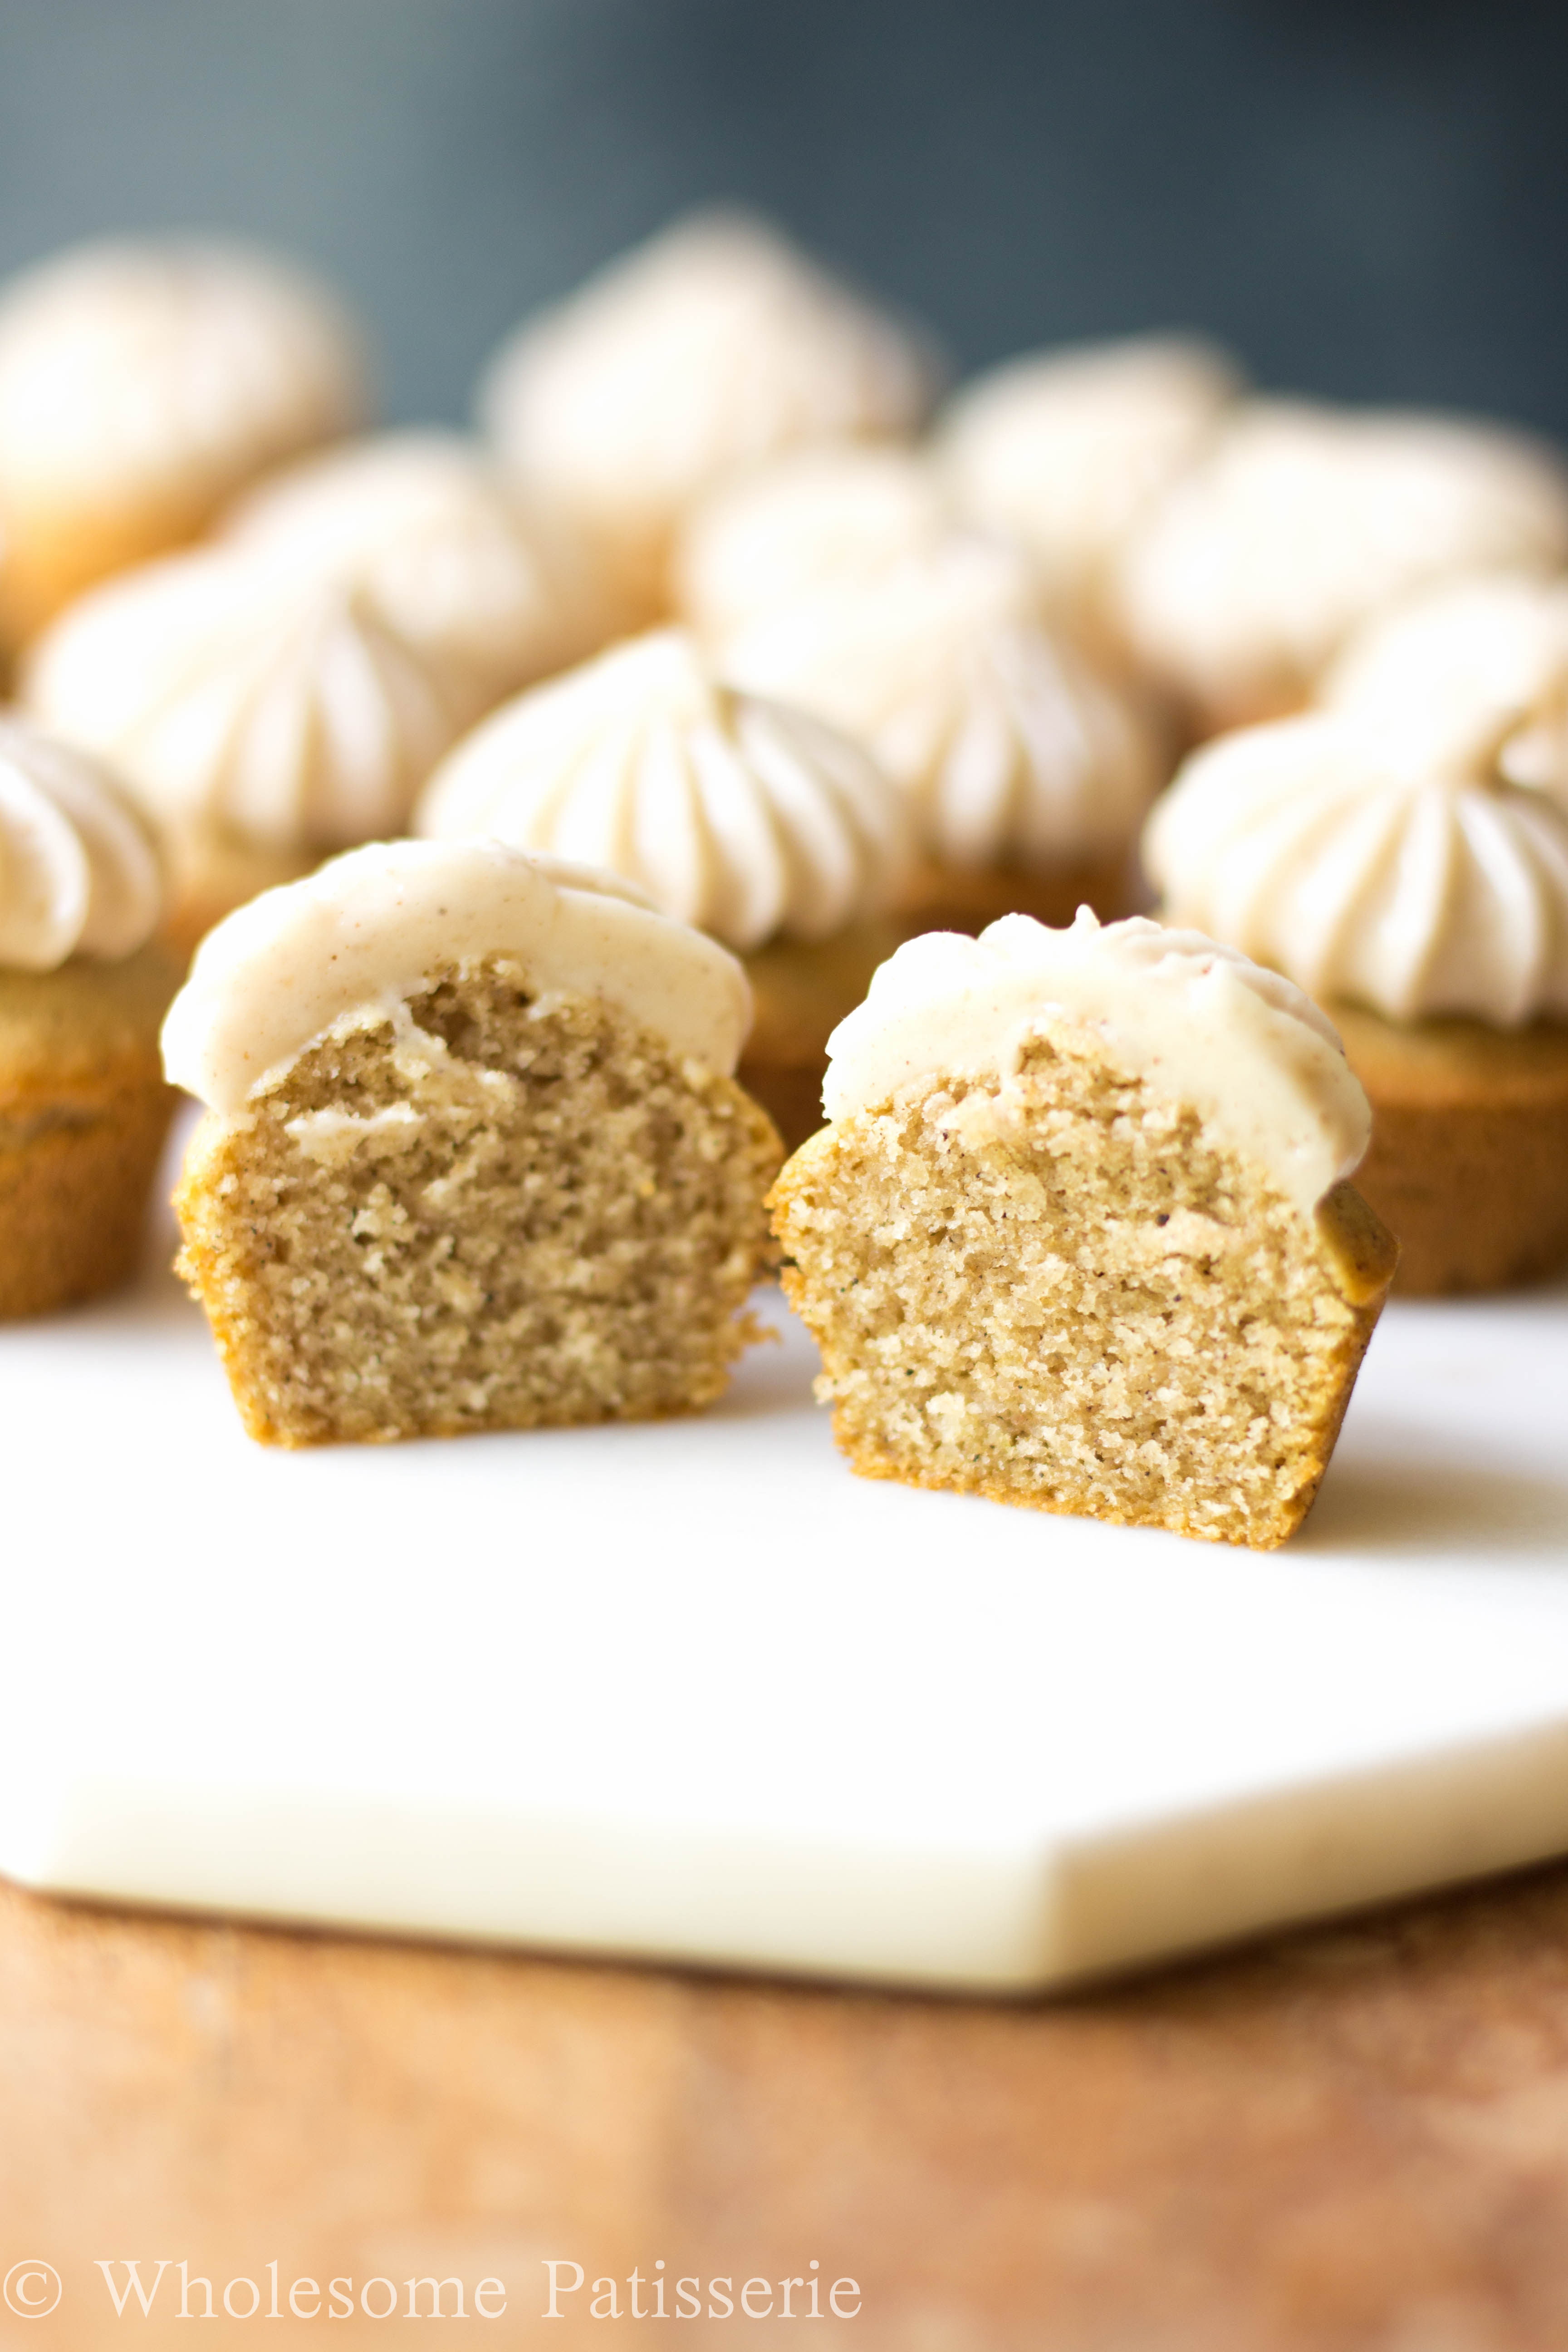 GLUTEN-FREE-cupcake-recipe-honey-cupcakes-vegetarian-DELICIOUS-easy-yummy-cupcakes-cinnamon-mini-cupcakes-wholesome-patisserie-quick-cupcakes